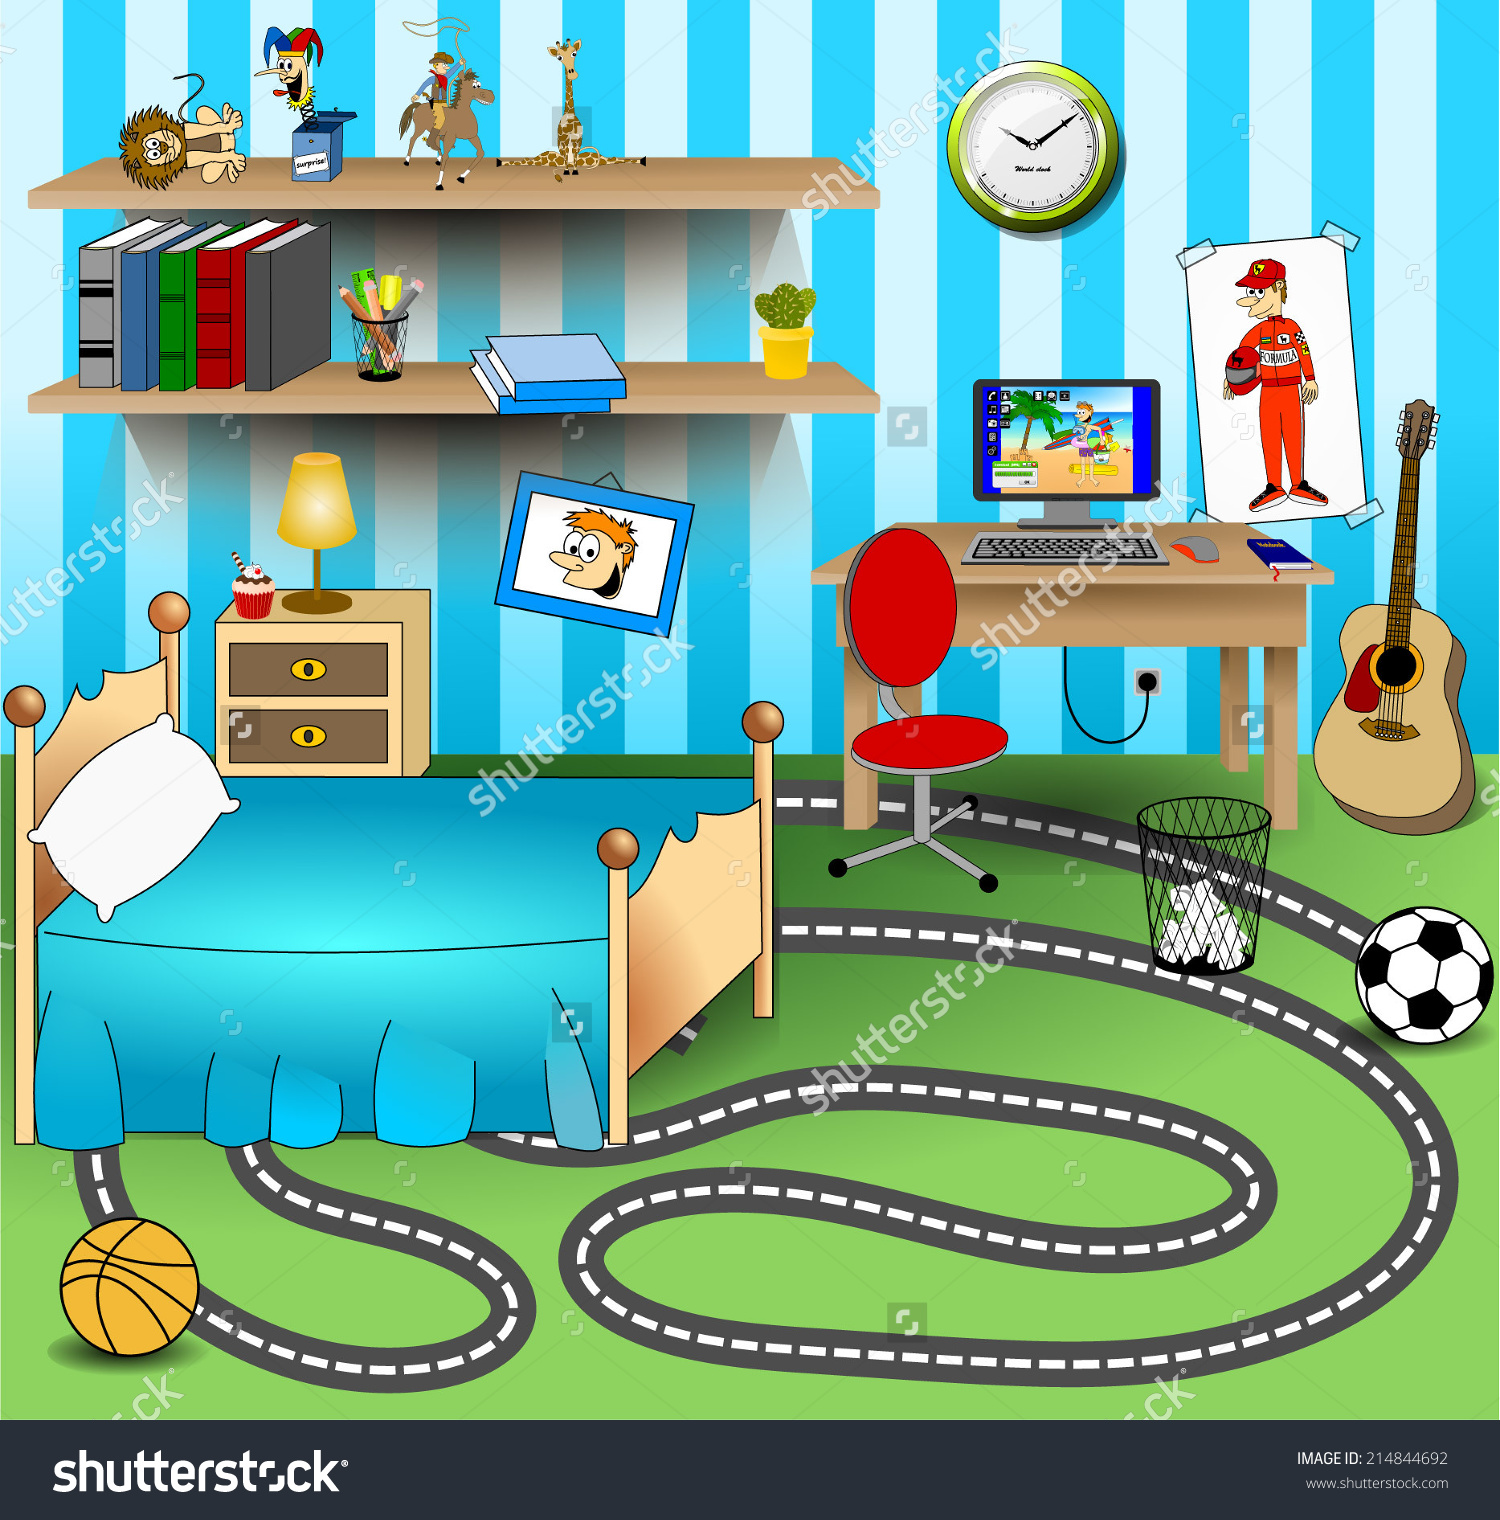 Bed clipart childrens bedroom For bedroom children children for